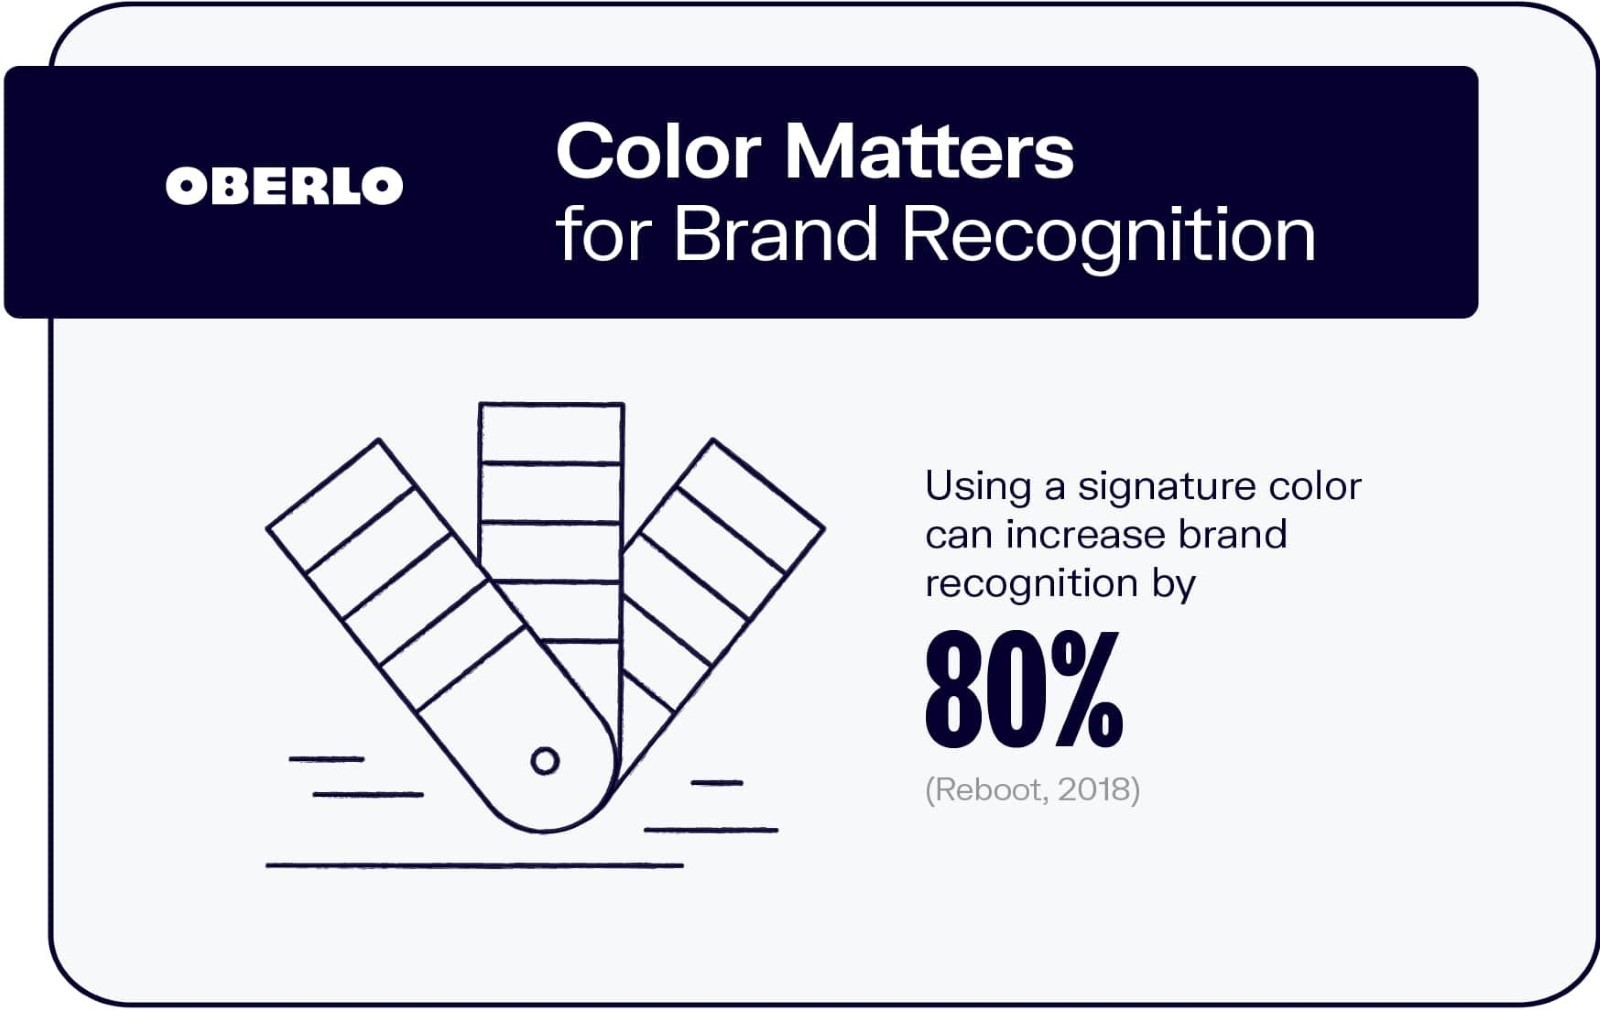 Color Matters for Brand Recognition